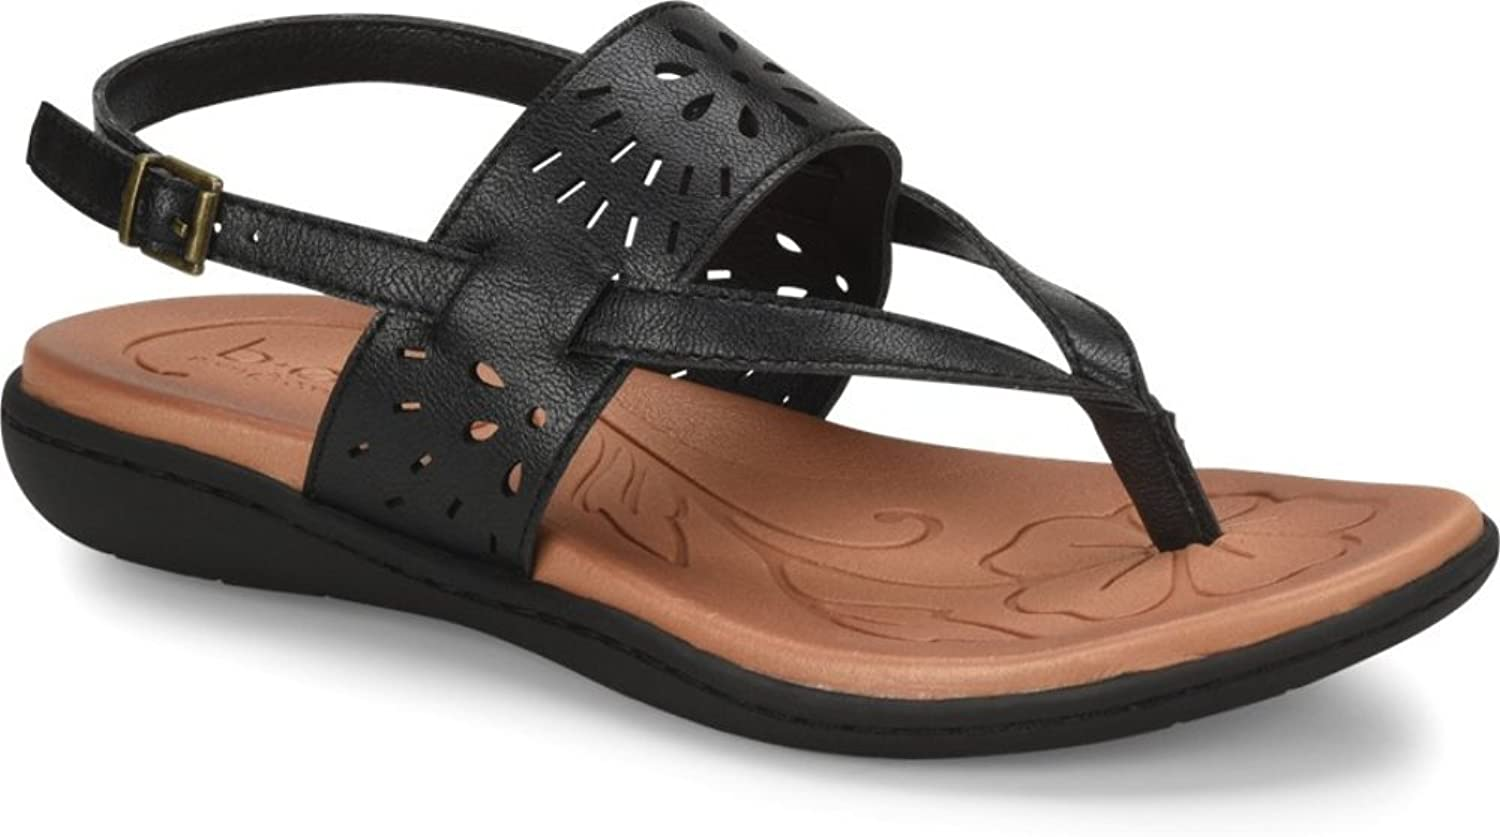 B.O.C. Women's, Clearwater Sandals Black 6 M